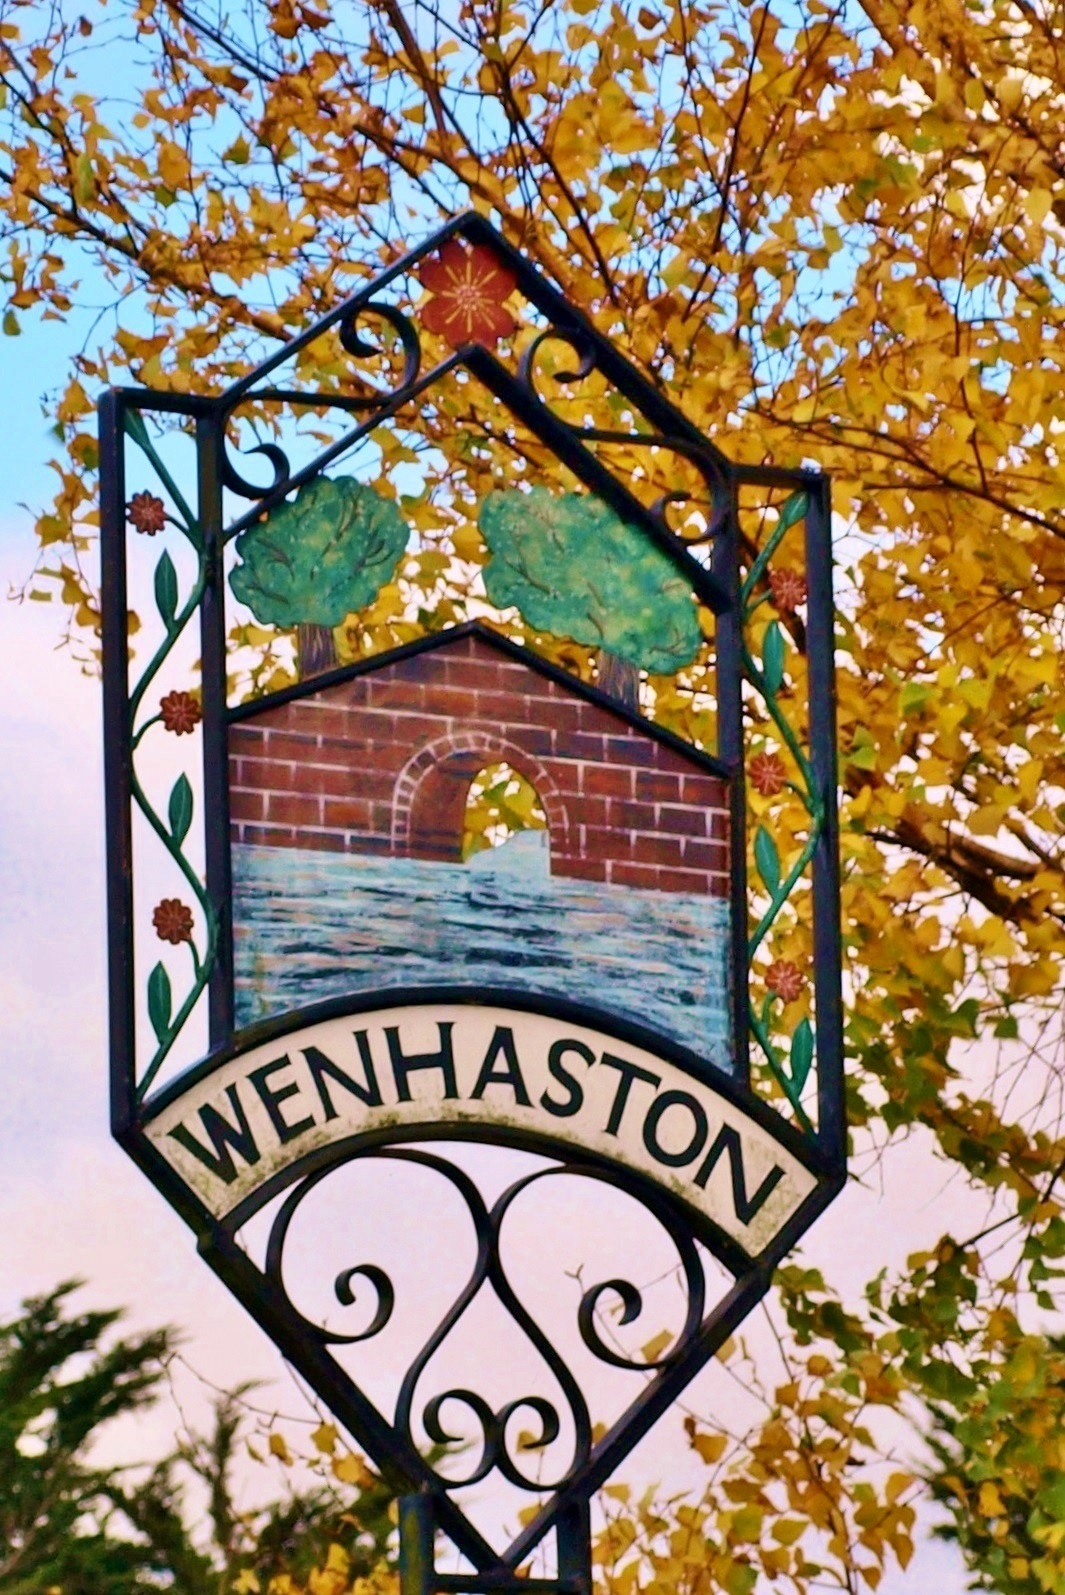 Wenhaston with Mells Hamlet